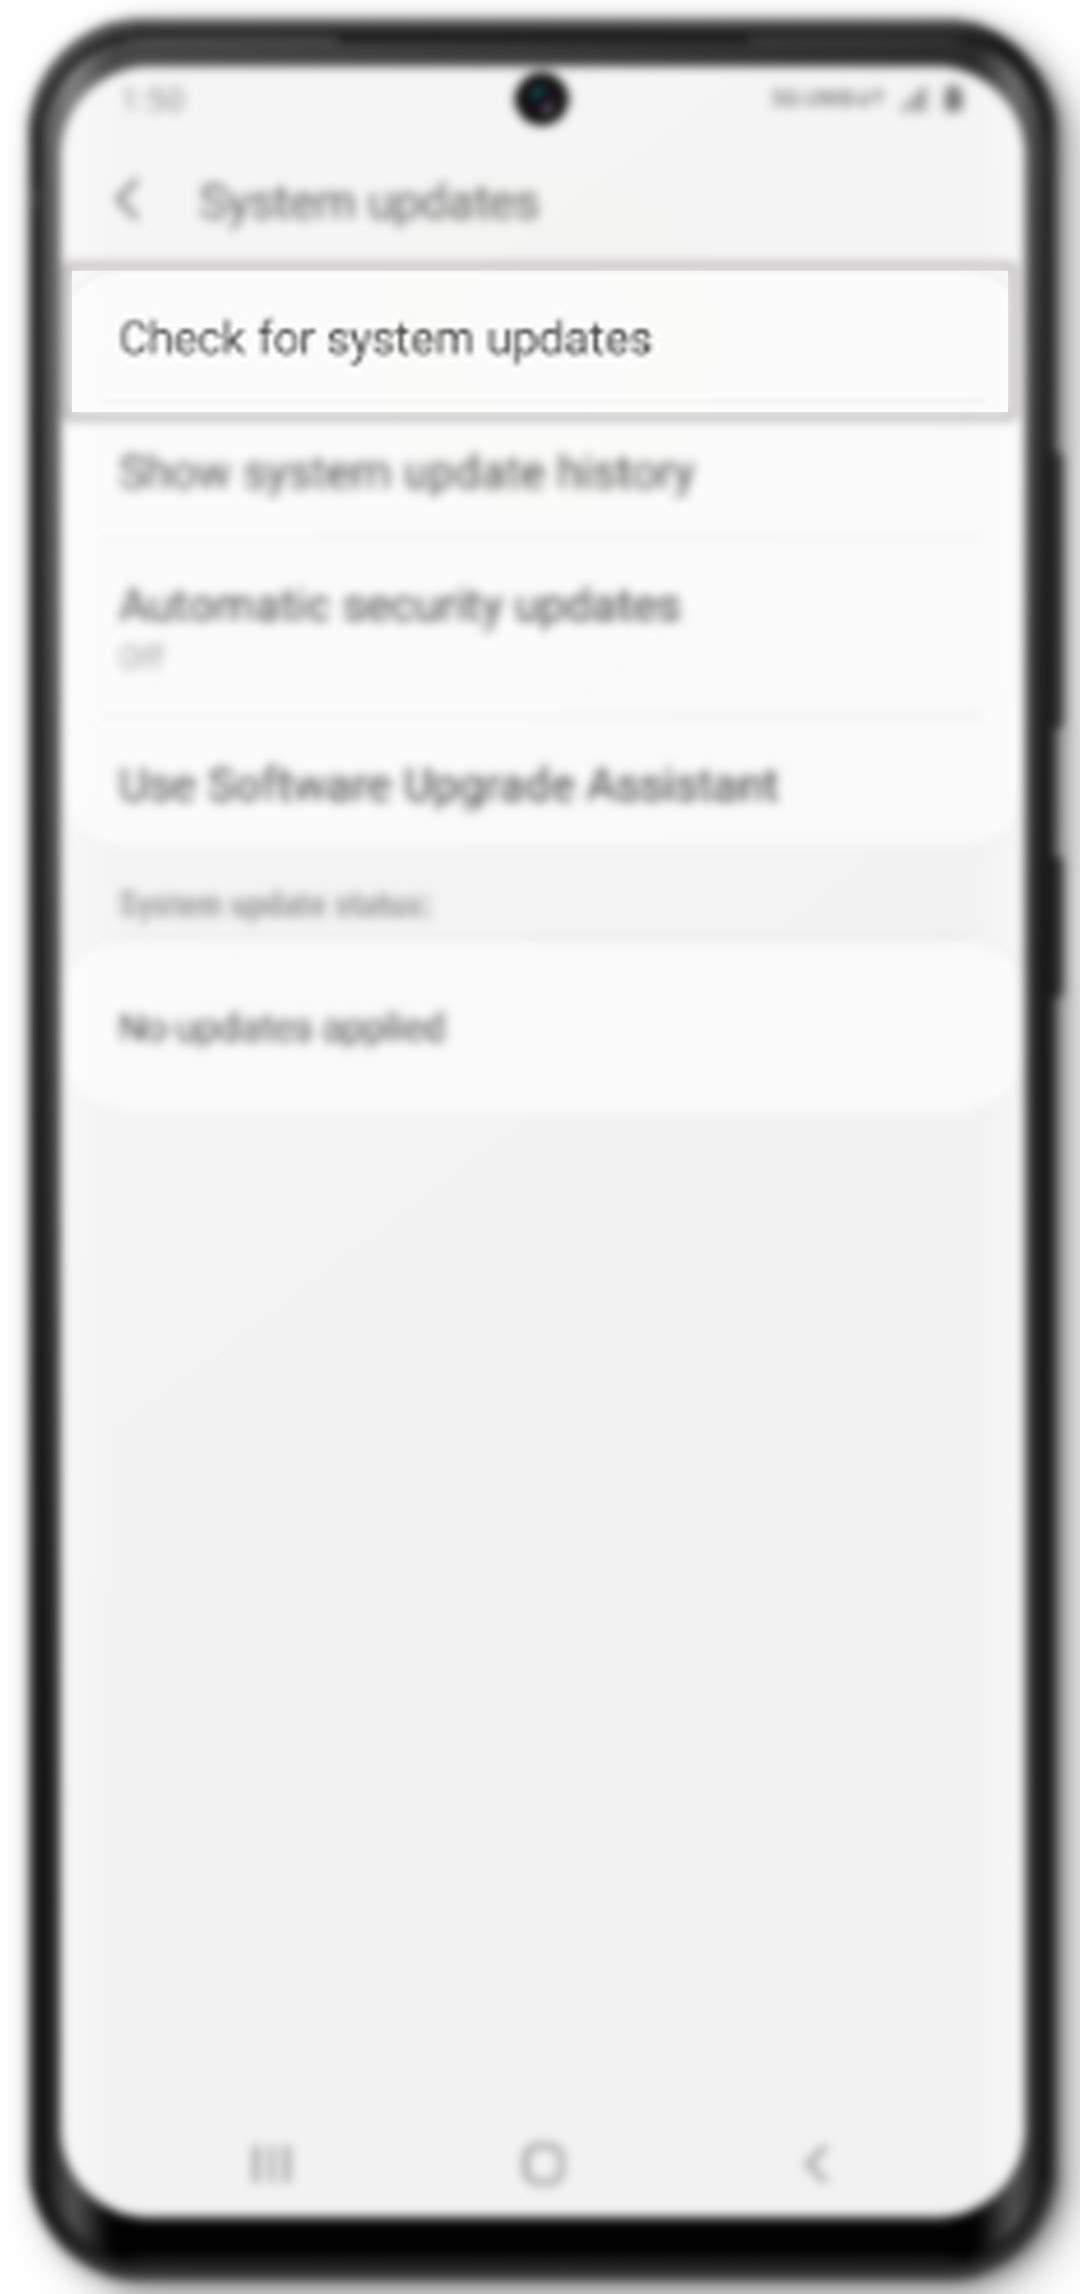 galaxy s20 auto rotate not working - update phone software